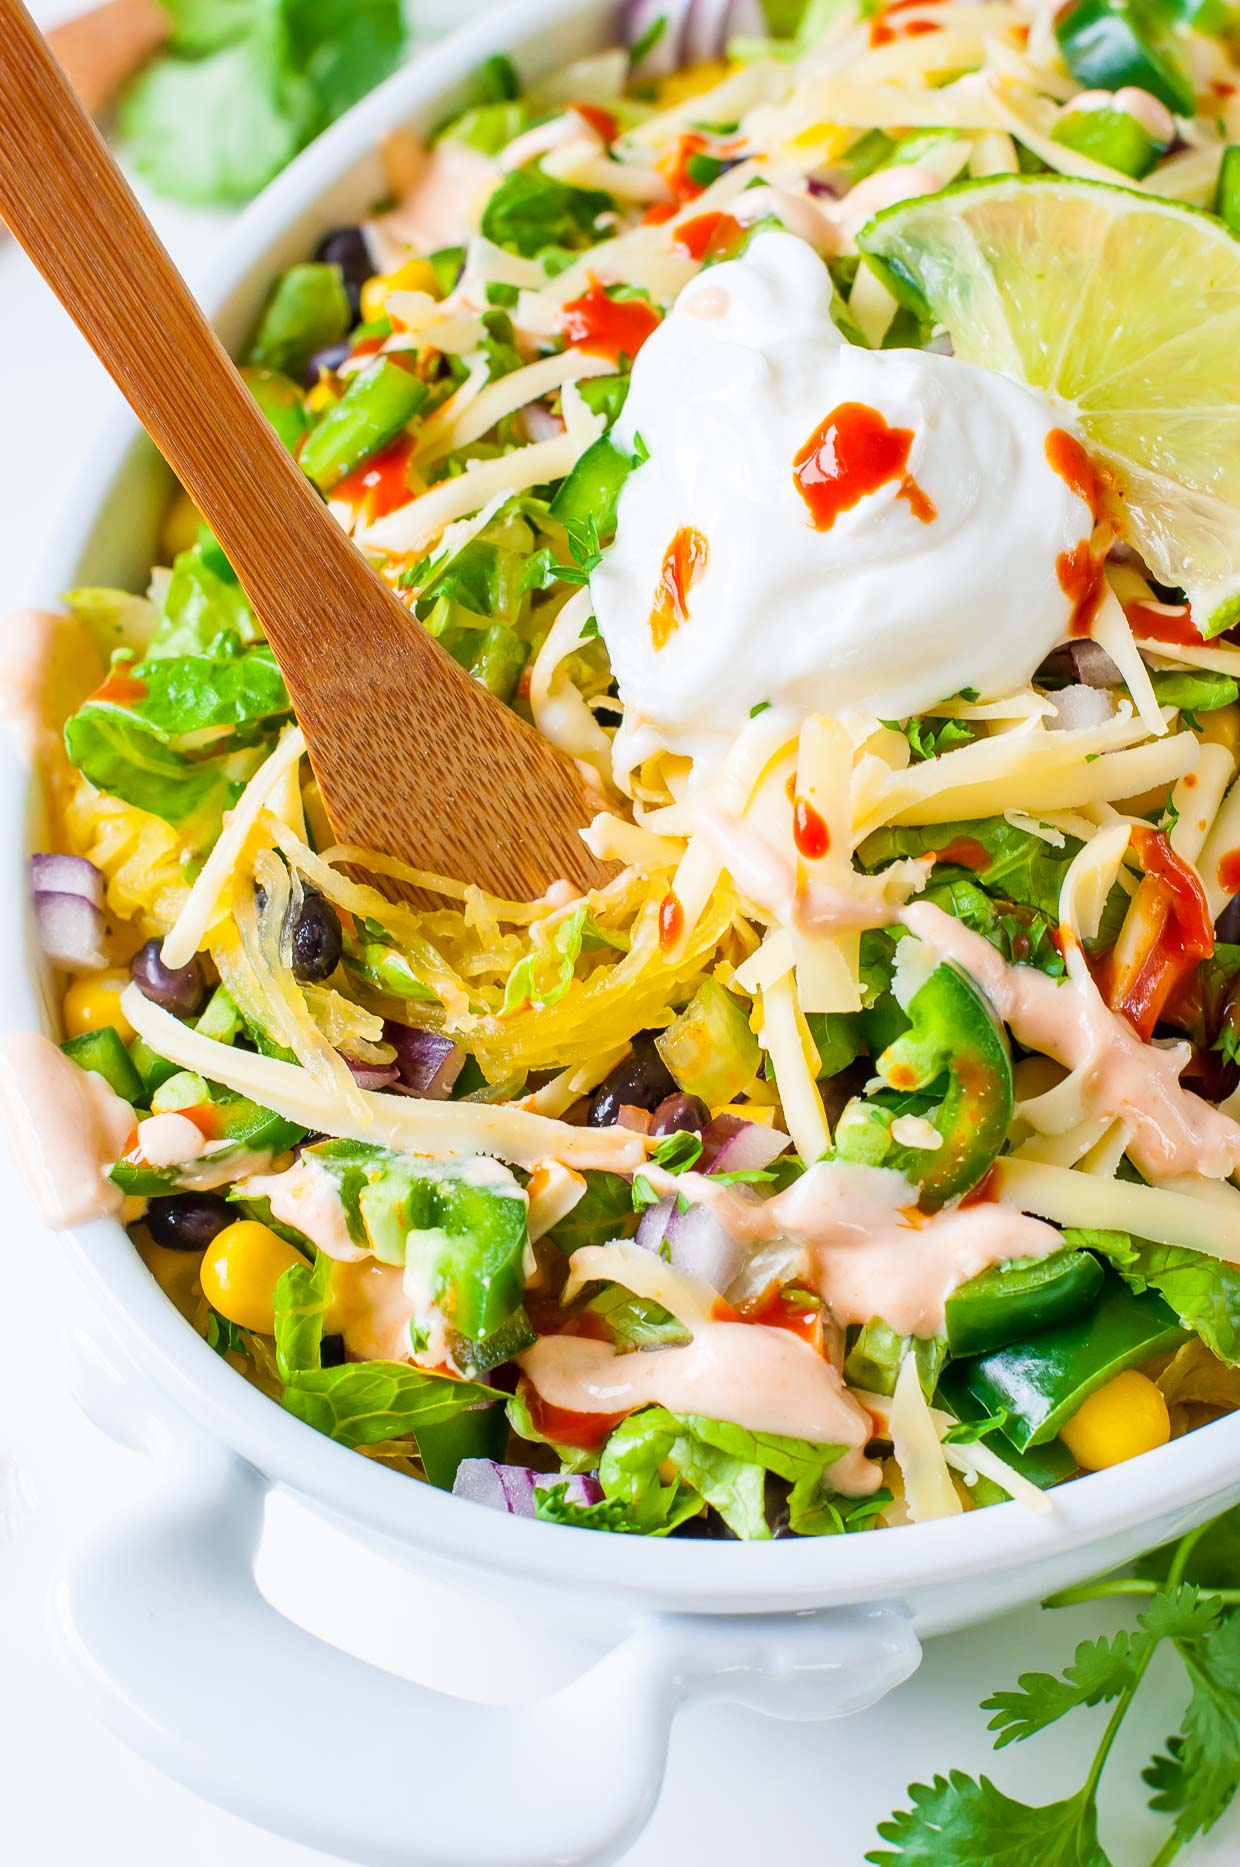 These tasty Spaghetti Squash Burrito Bowls taste just like Chipotle's uber-addictive burrito bowls and are loaded with healthy whole food ingredients!